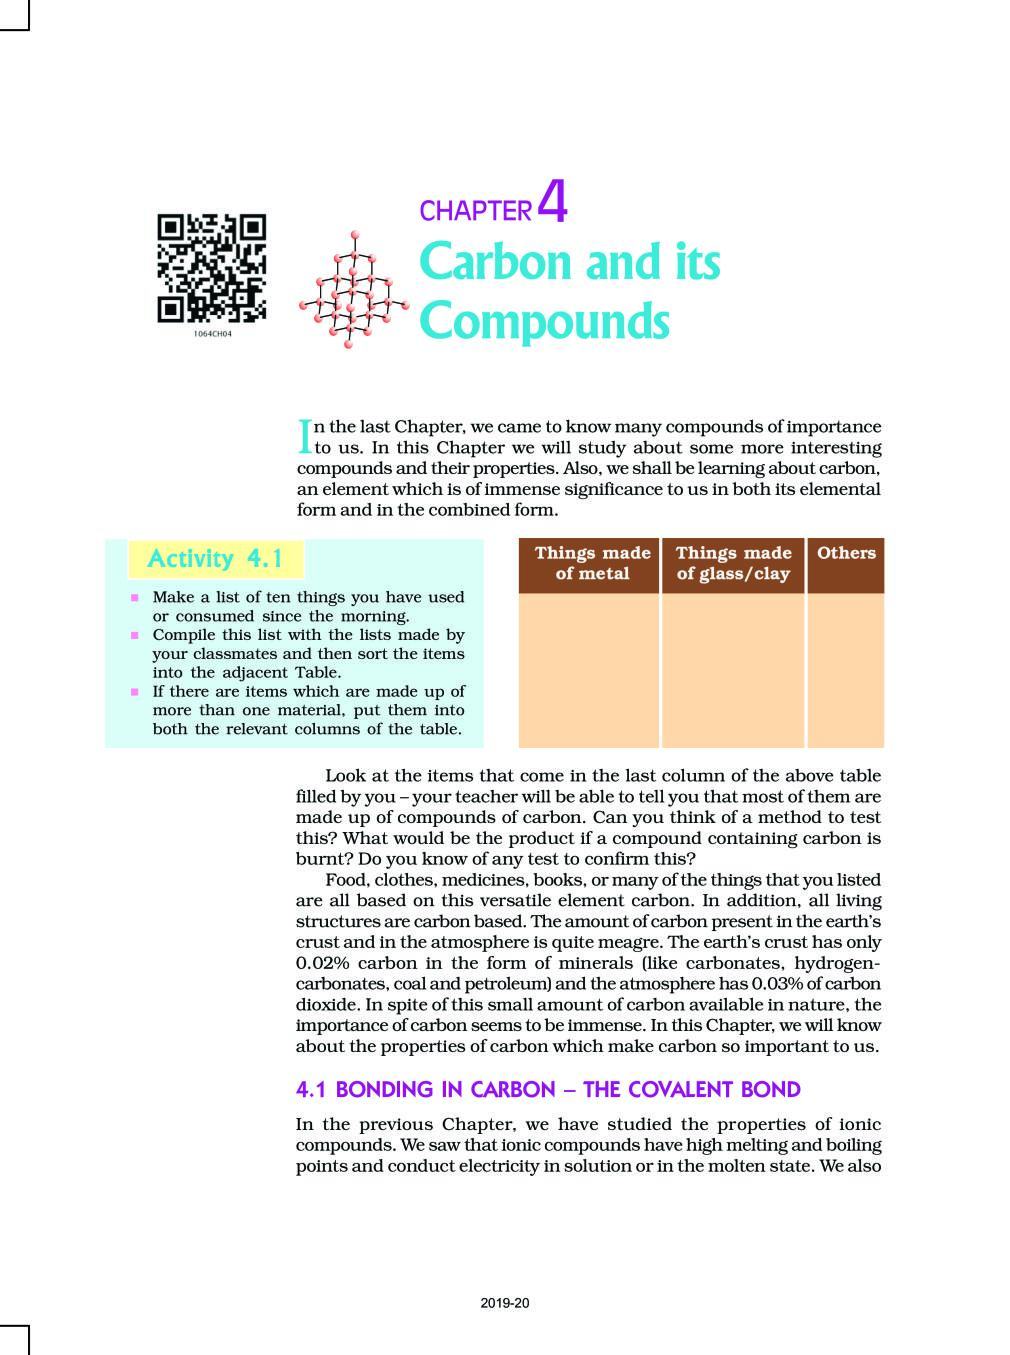 NCERT Book Class 10 Science Chapter 4 Carbon and its Compounds